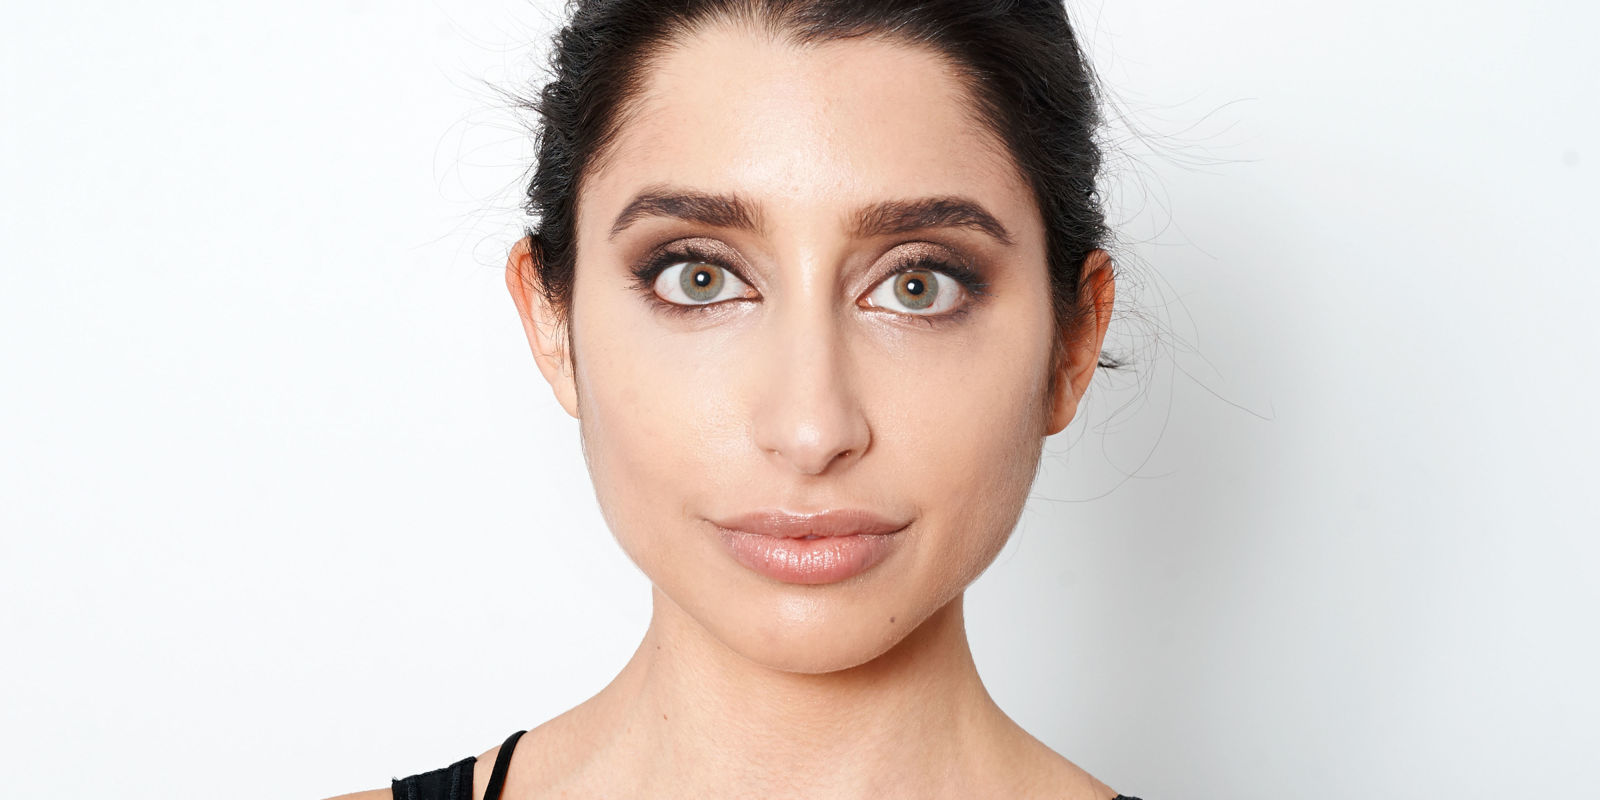 How To Master The Smokey Eye In 4 Easy Steps